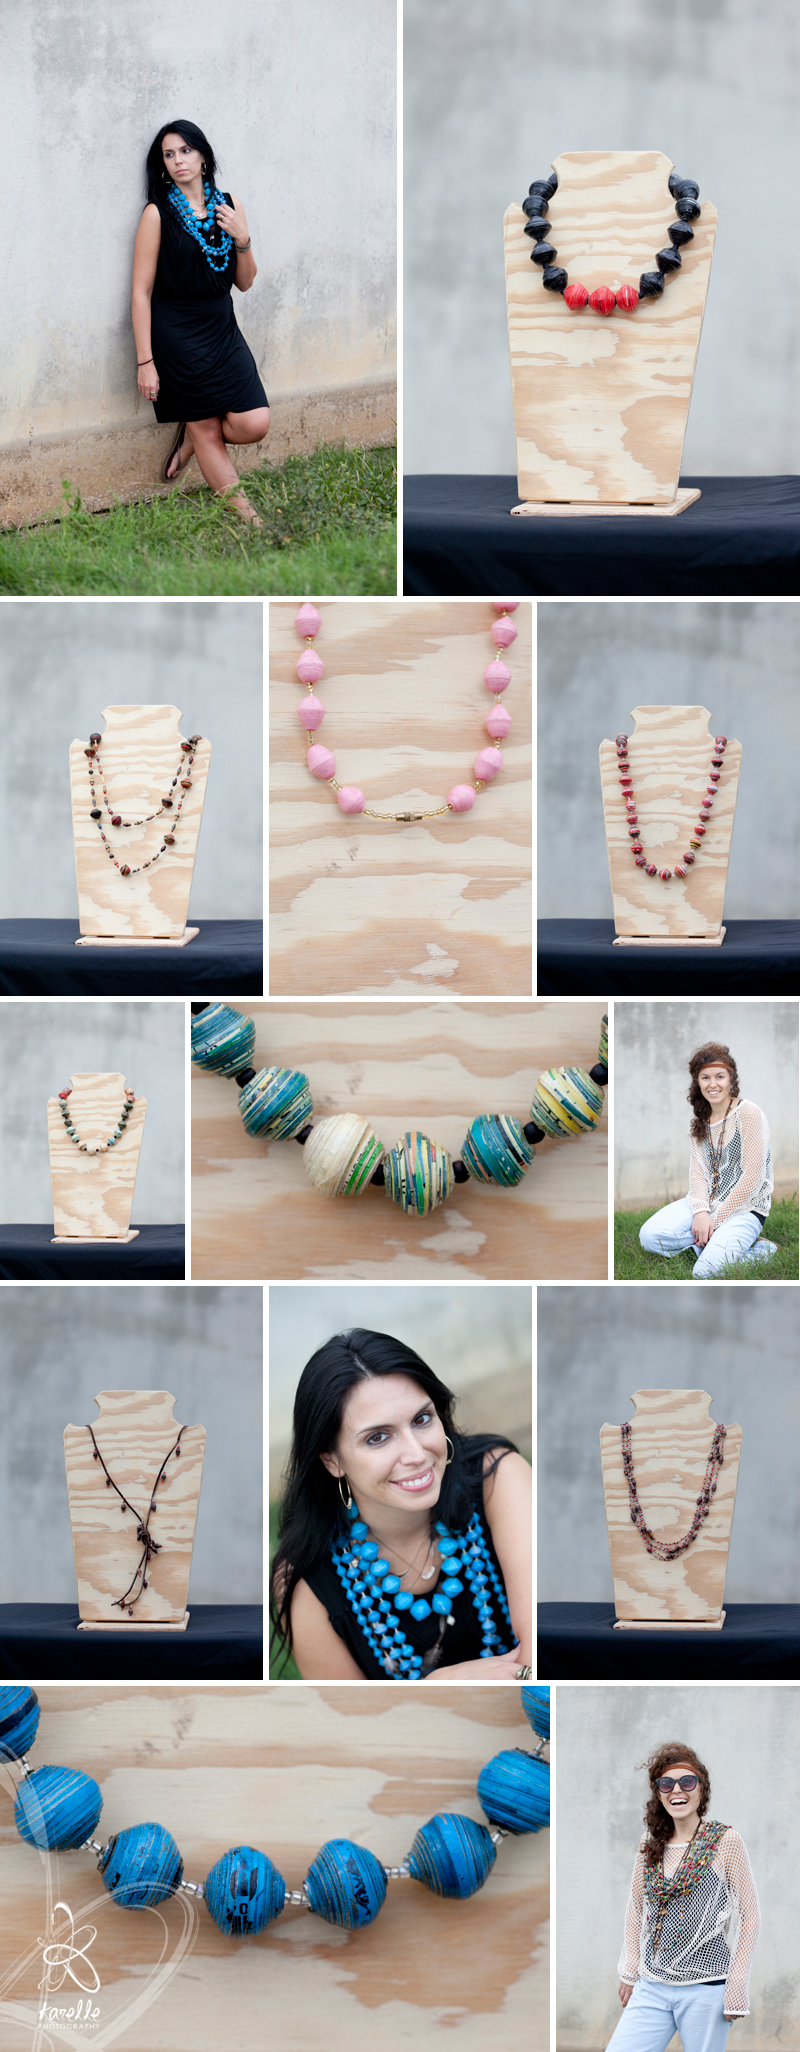 houston photographer karelle photography Somo beads